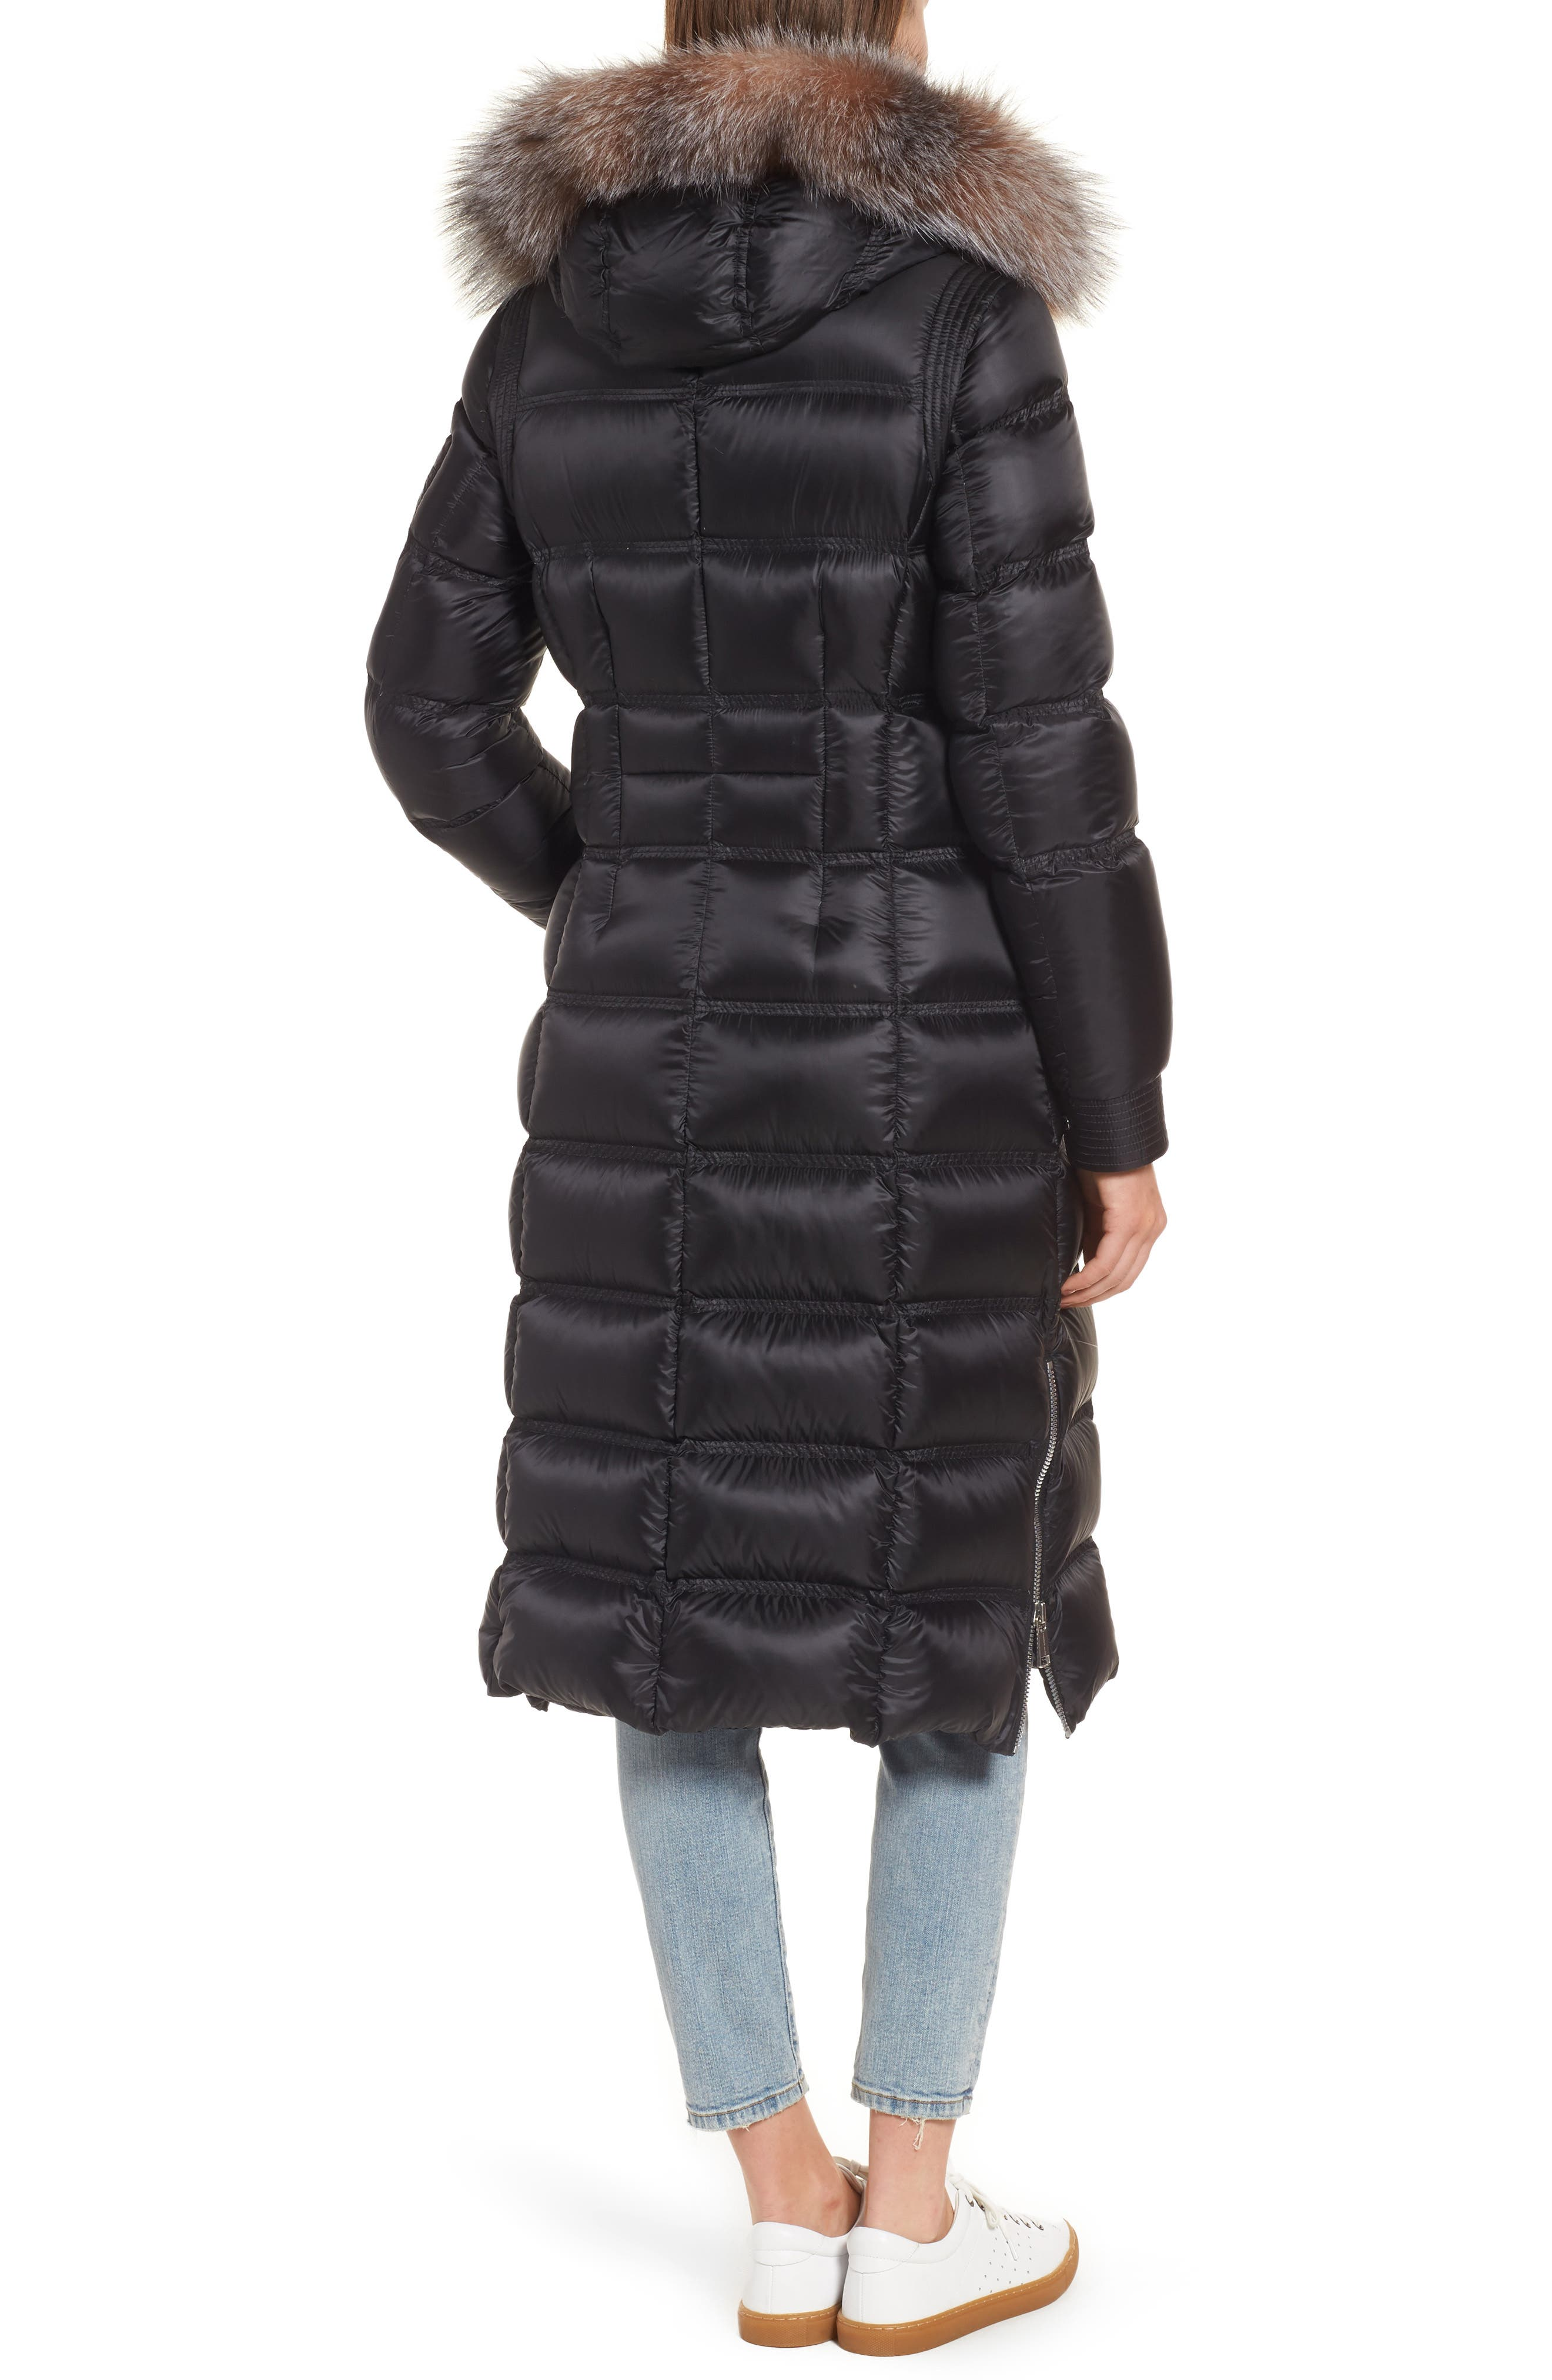 Charlize 42 Hooded Water Resistant Down Coat with Genuine Fox Fur Trim,                             Alternate thumbnail 2, color,                             001